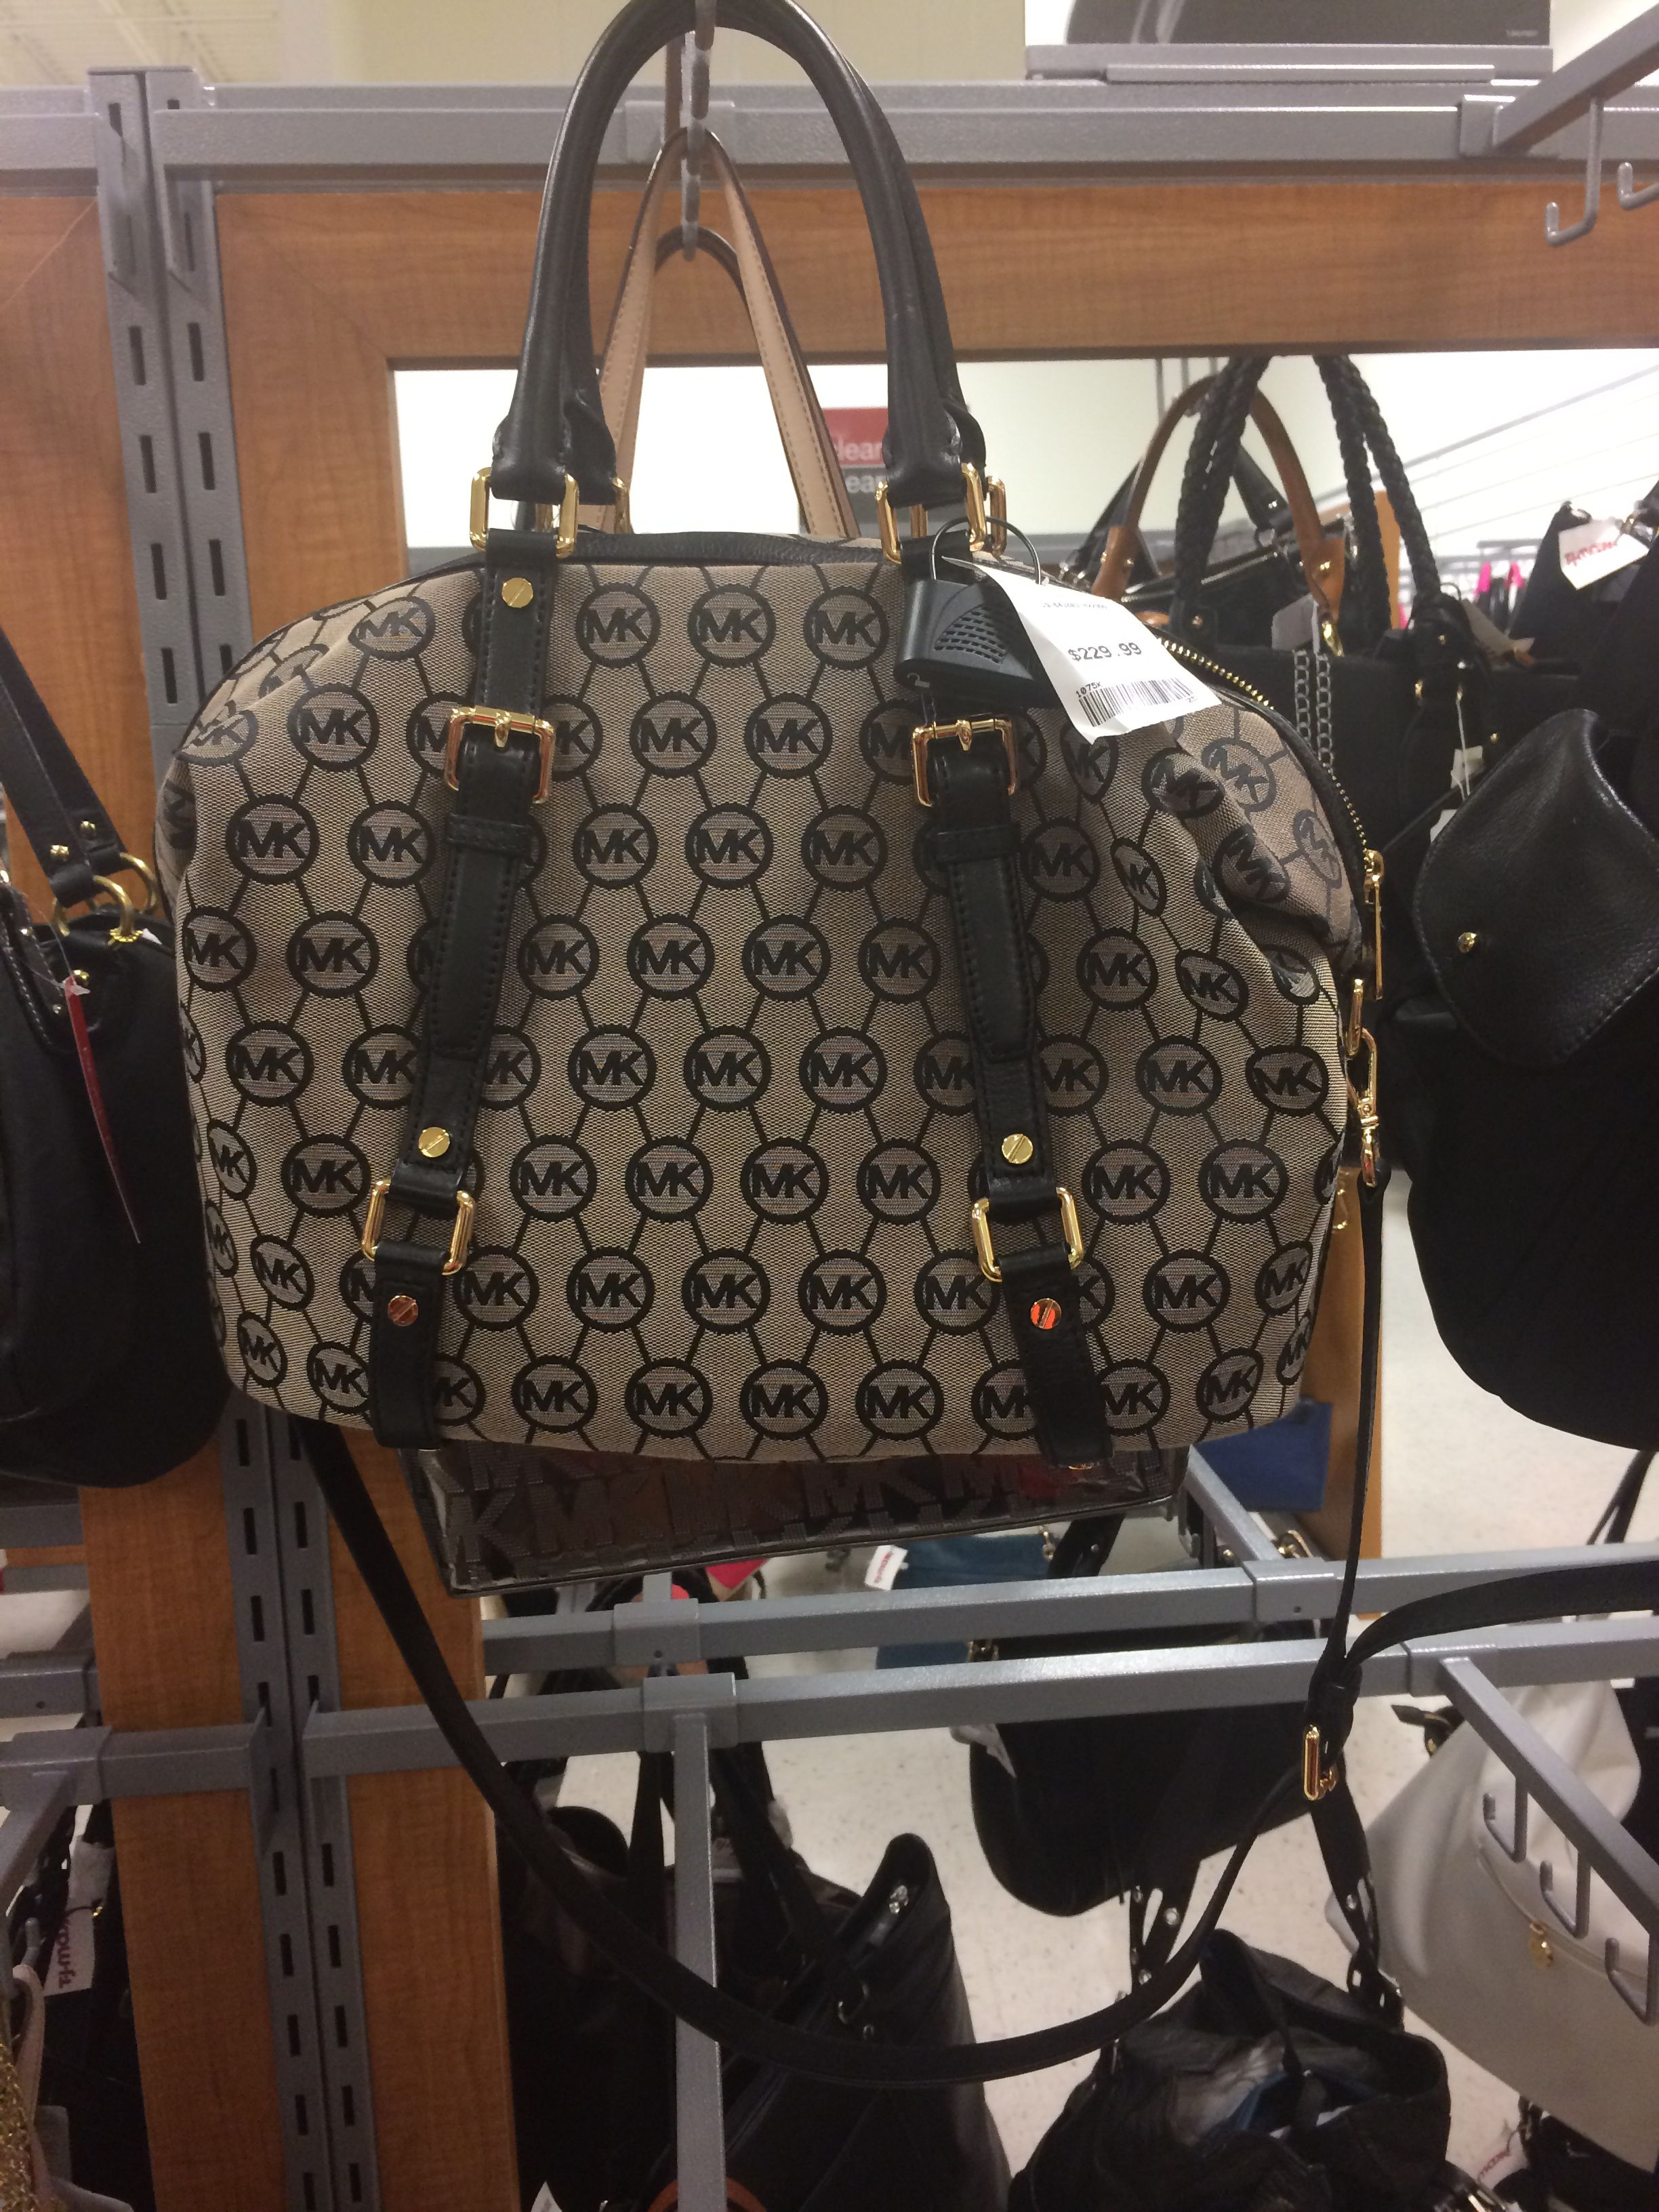 Mk Michael Kors Purse Tj Maxx Cute Bags Purses Louis